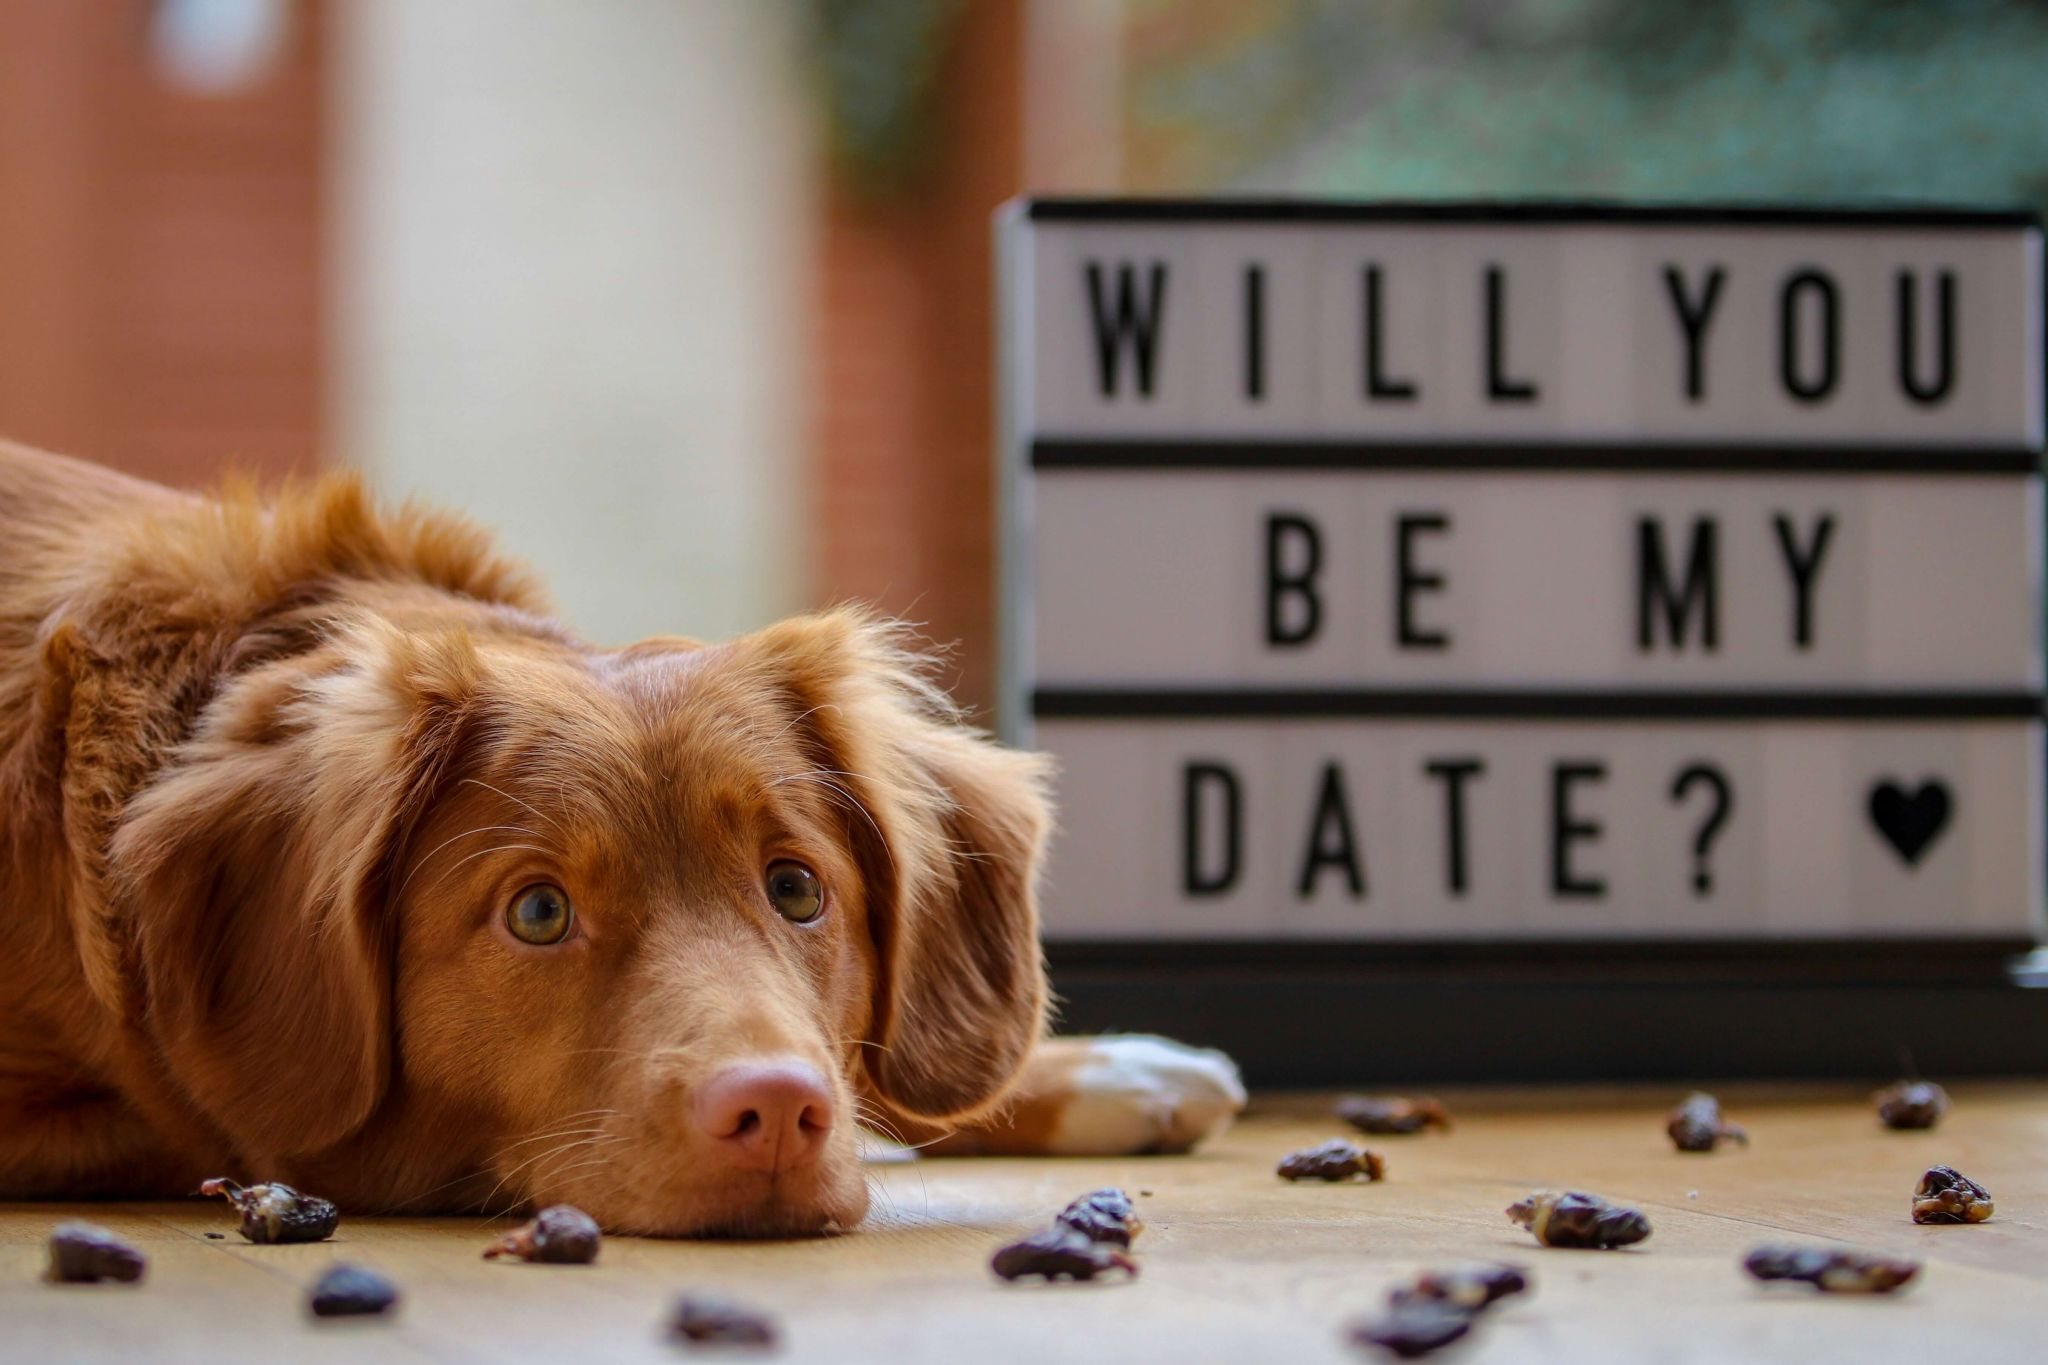 problem page edition 24 - dog next to a sign saying will you be my date?